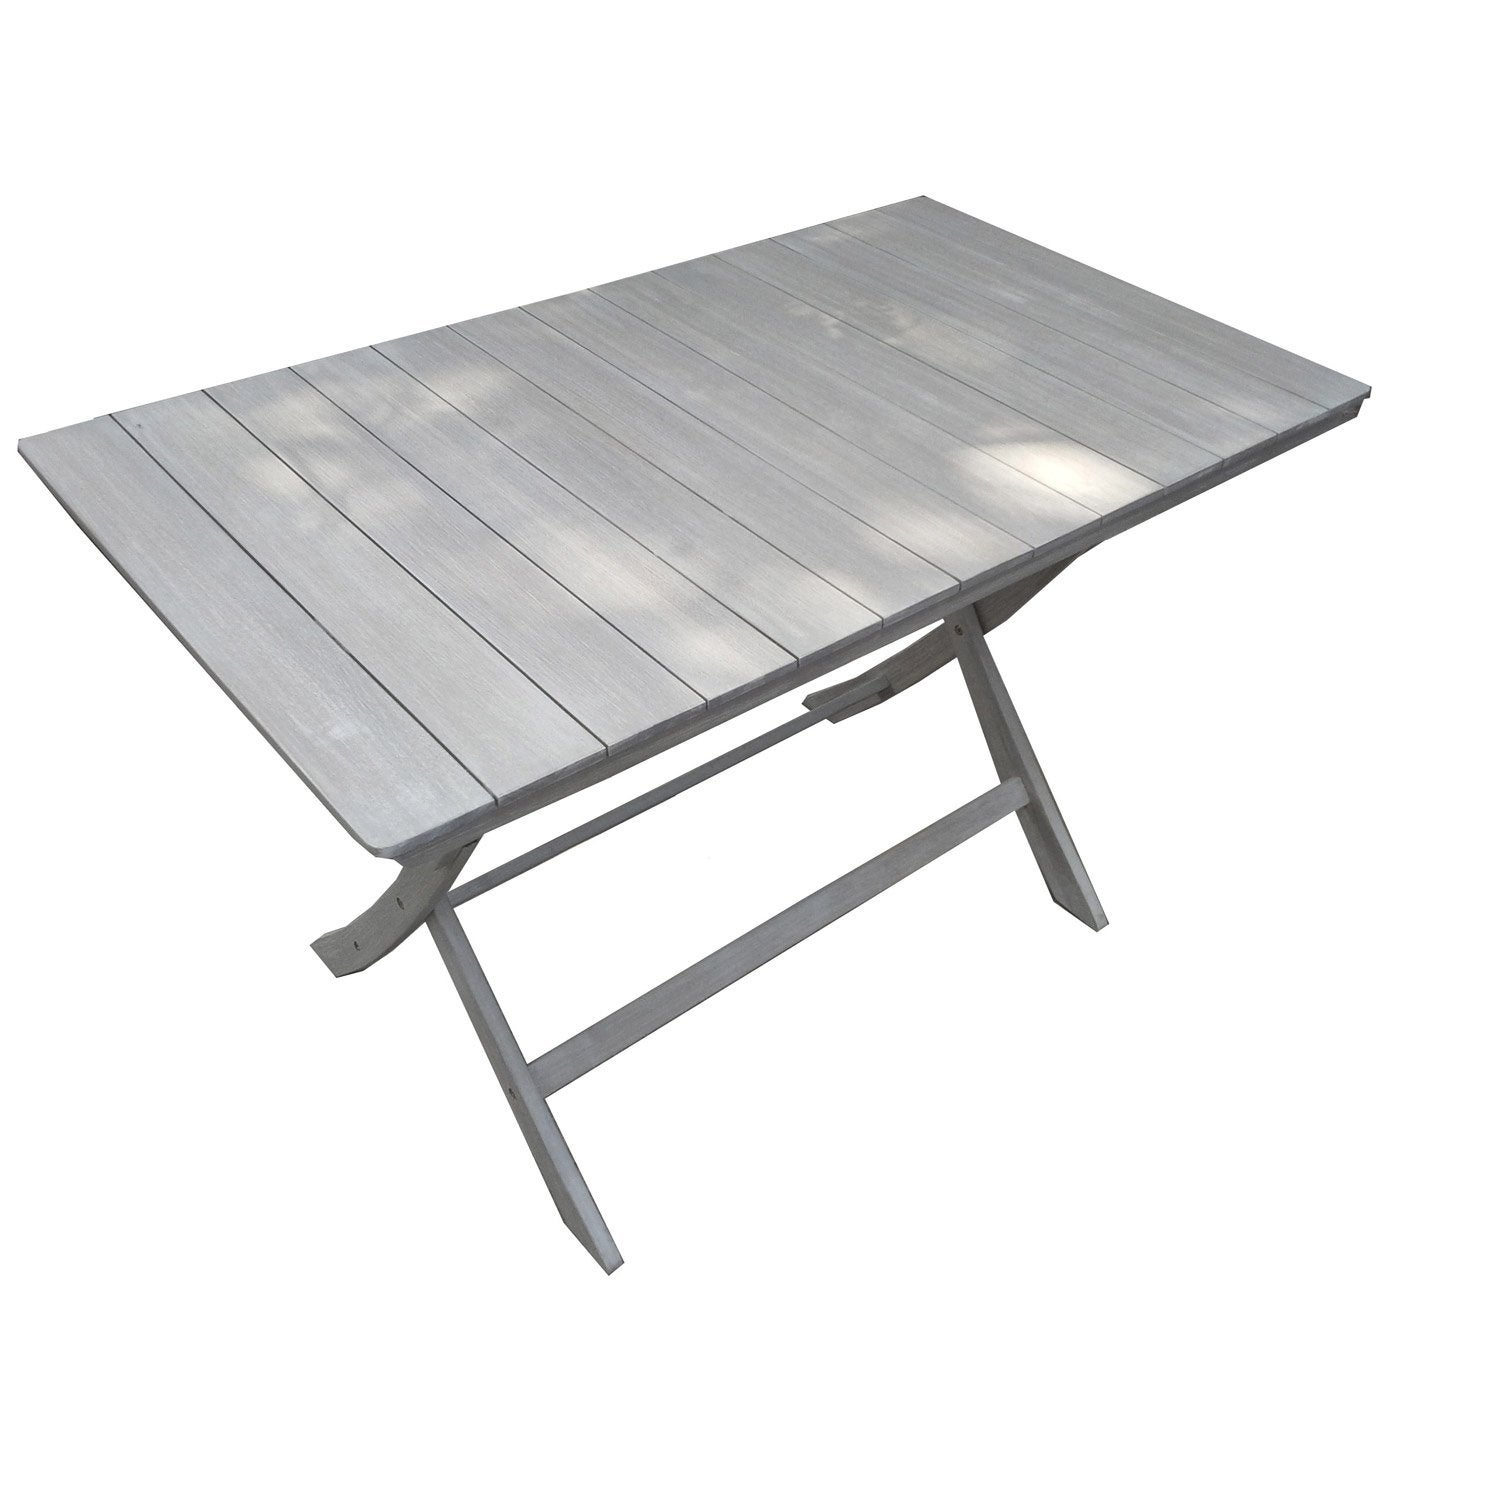 Table de jardin naterial portofino rectangulaire gris 4 for Table extensible leroy merlin